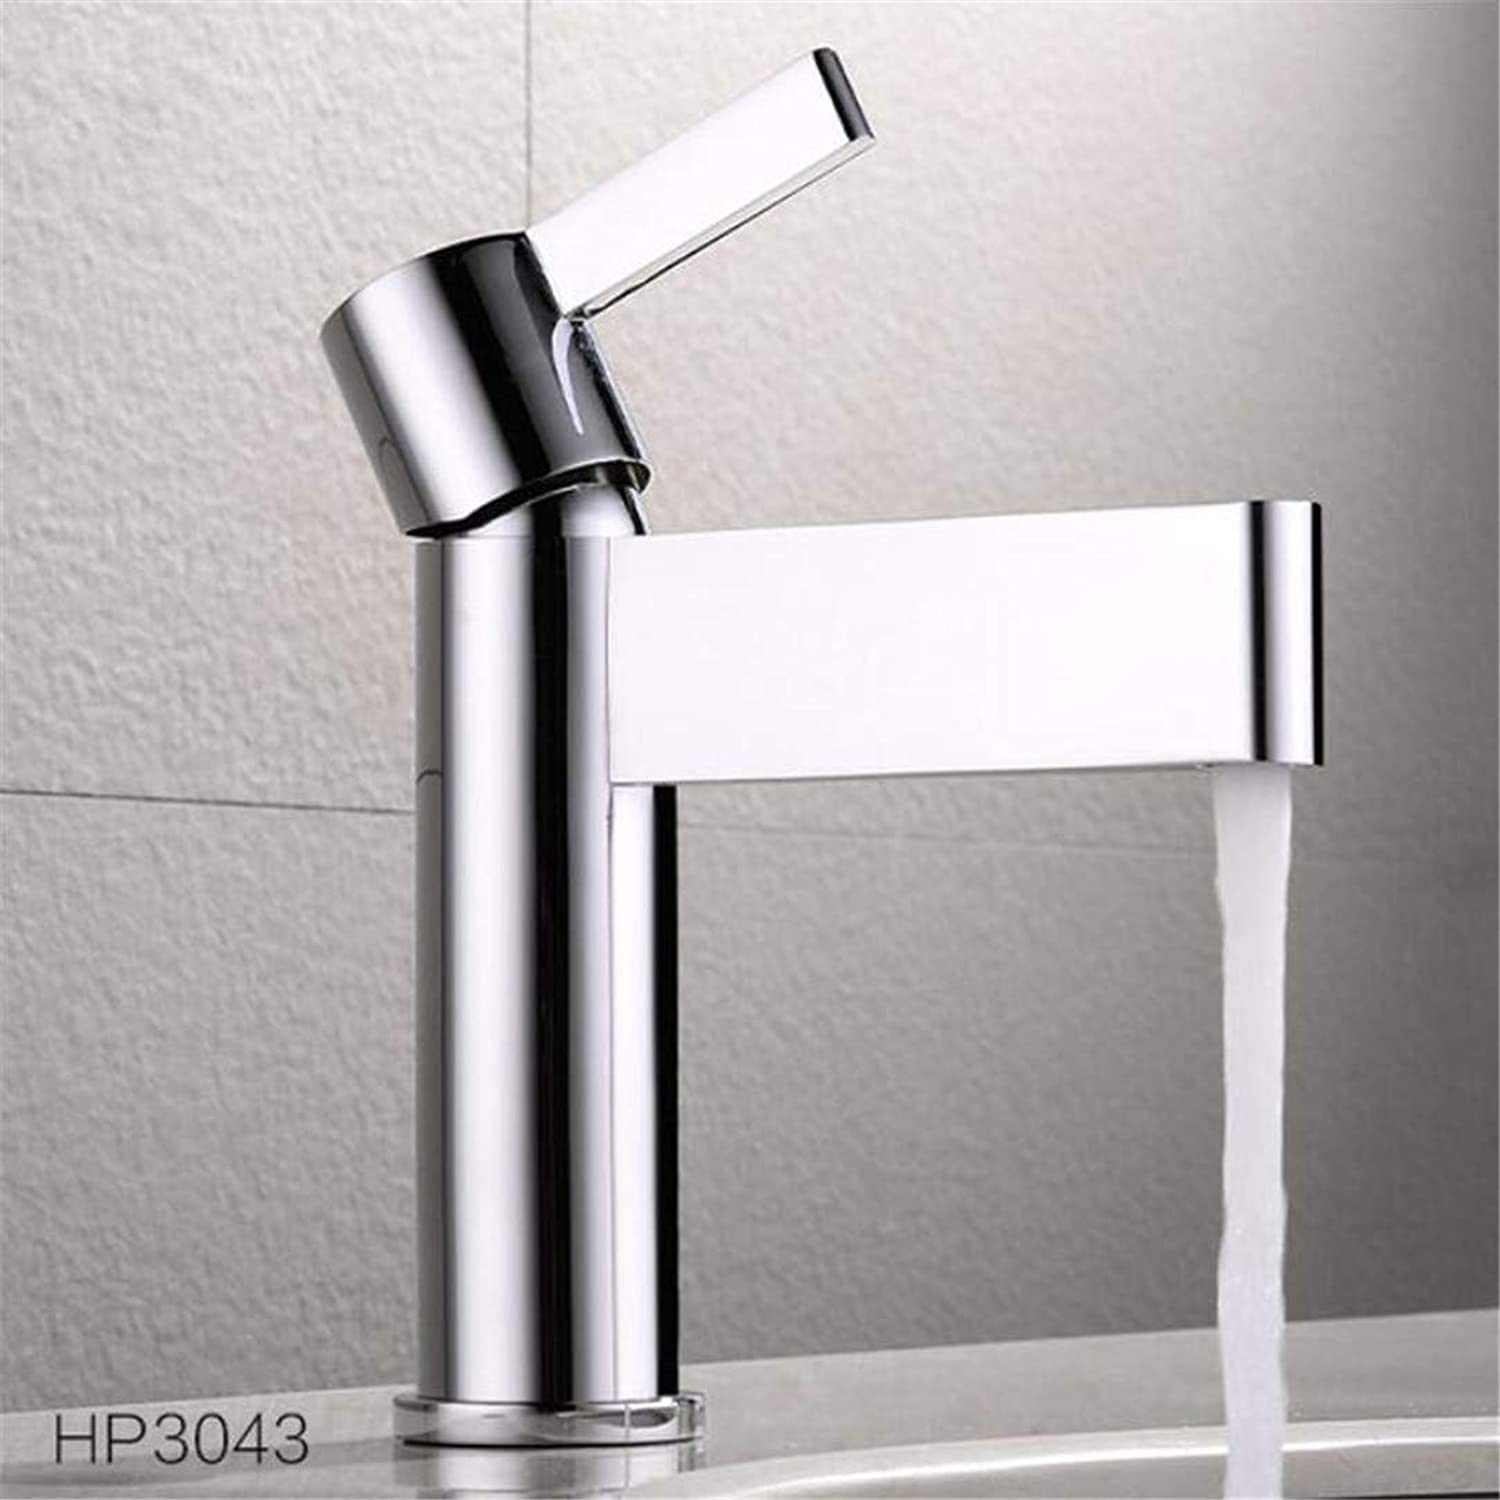 Faucet Washbasin Mixer High Quality Single Handle Hot Cold Chrome Bathroom Faucet Water Tap Mixer Brass Basin Faucet